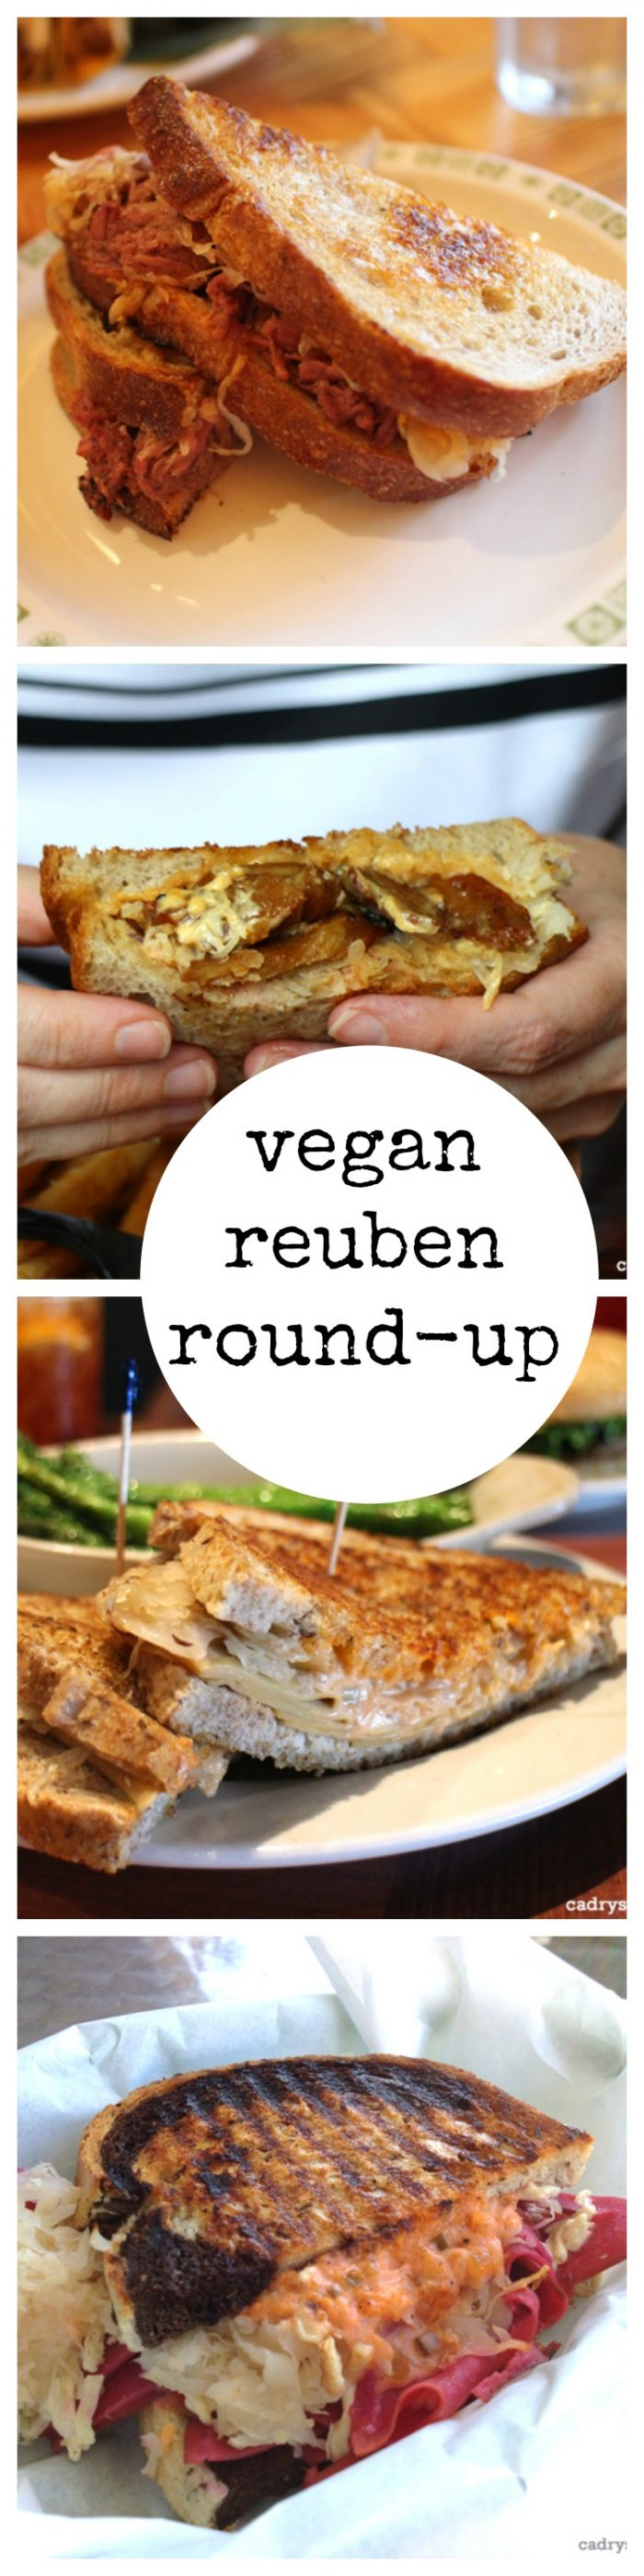 Vegan reuben round-up: 13 vegan reubens across the United States that you need to try | cadryskitchen.com